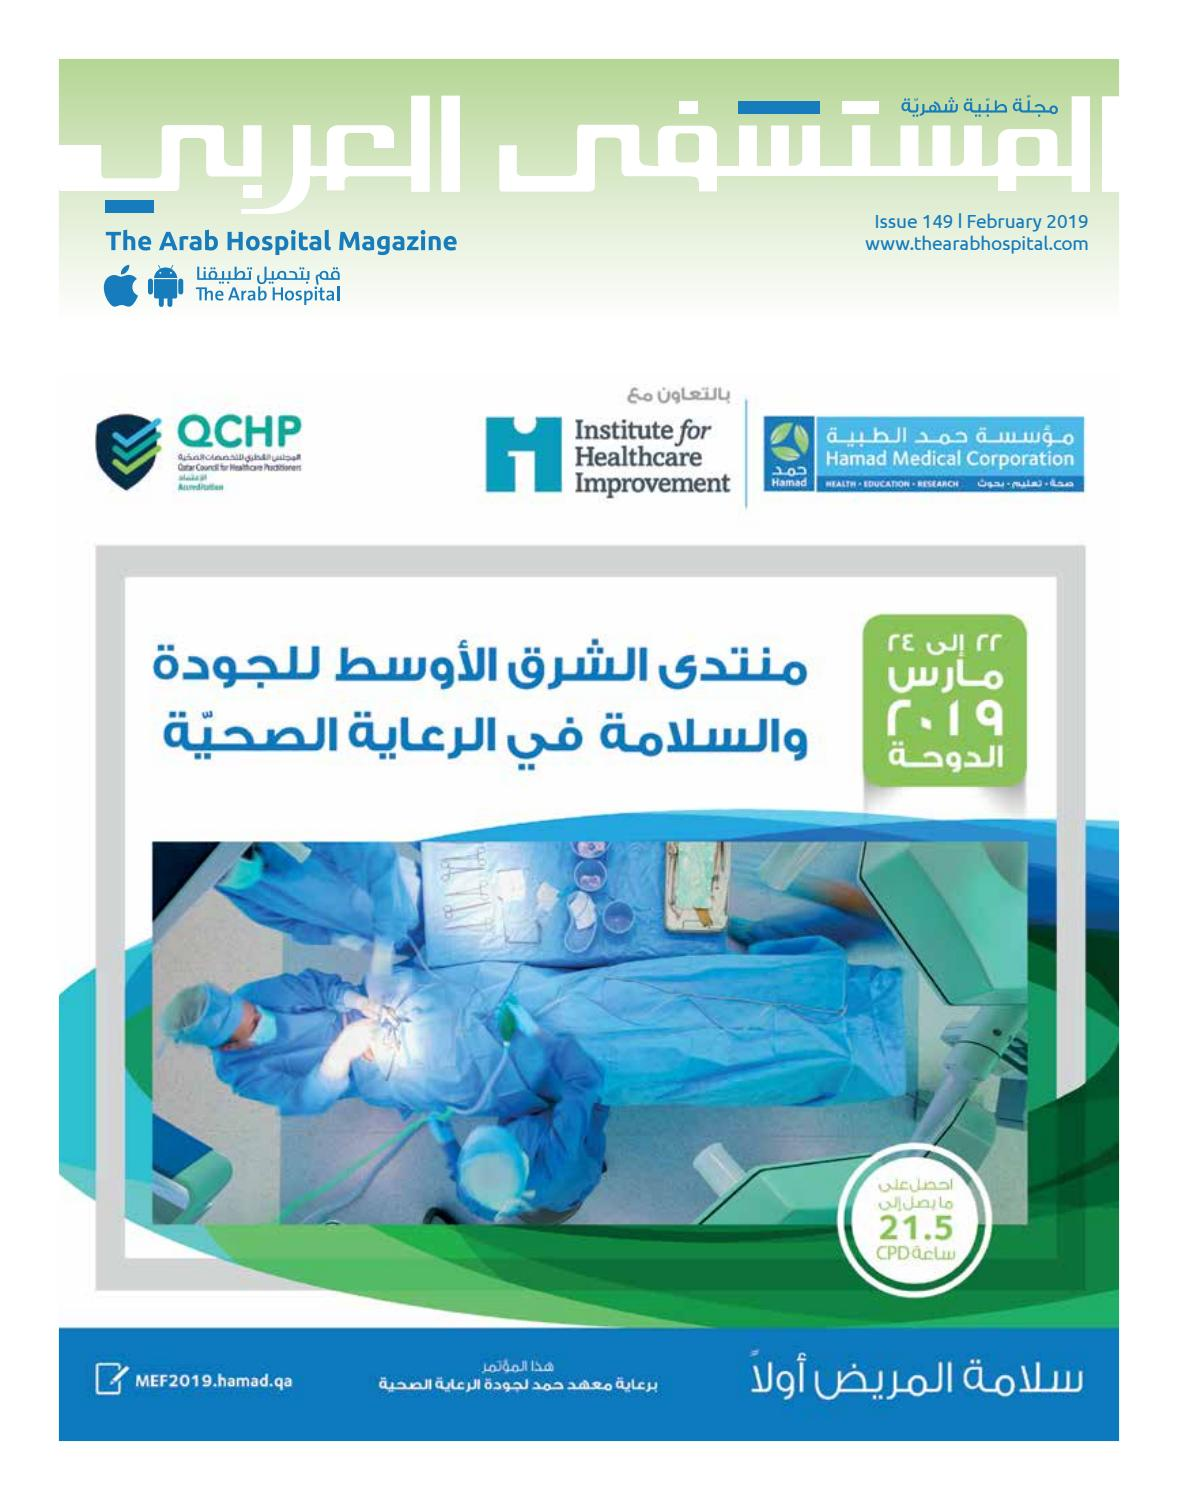 6d2ab6556 The Arab Hospital Magazine issue 149 by The Arab Hospital Magazine - issuu